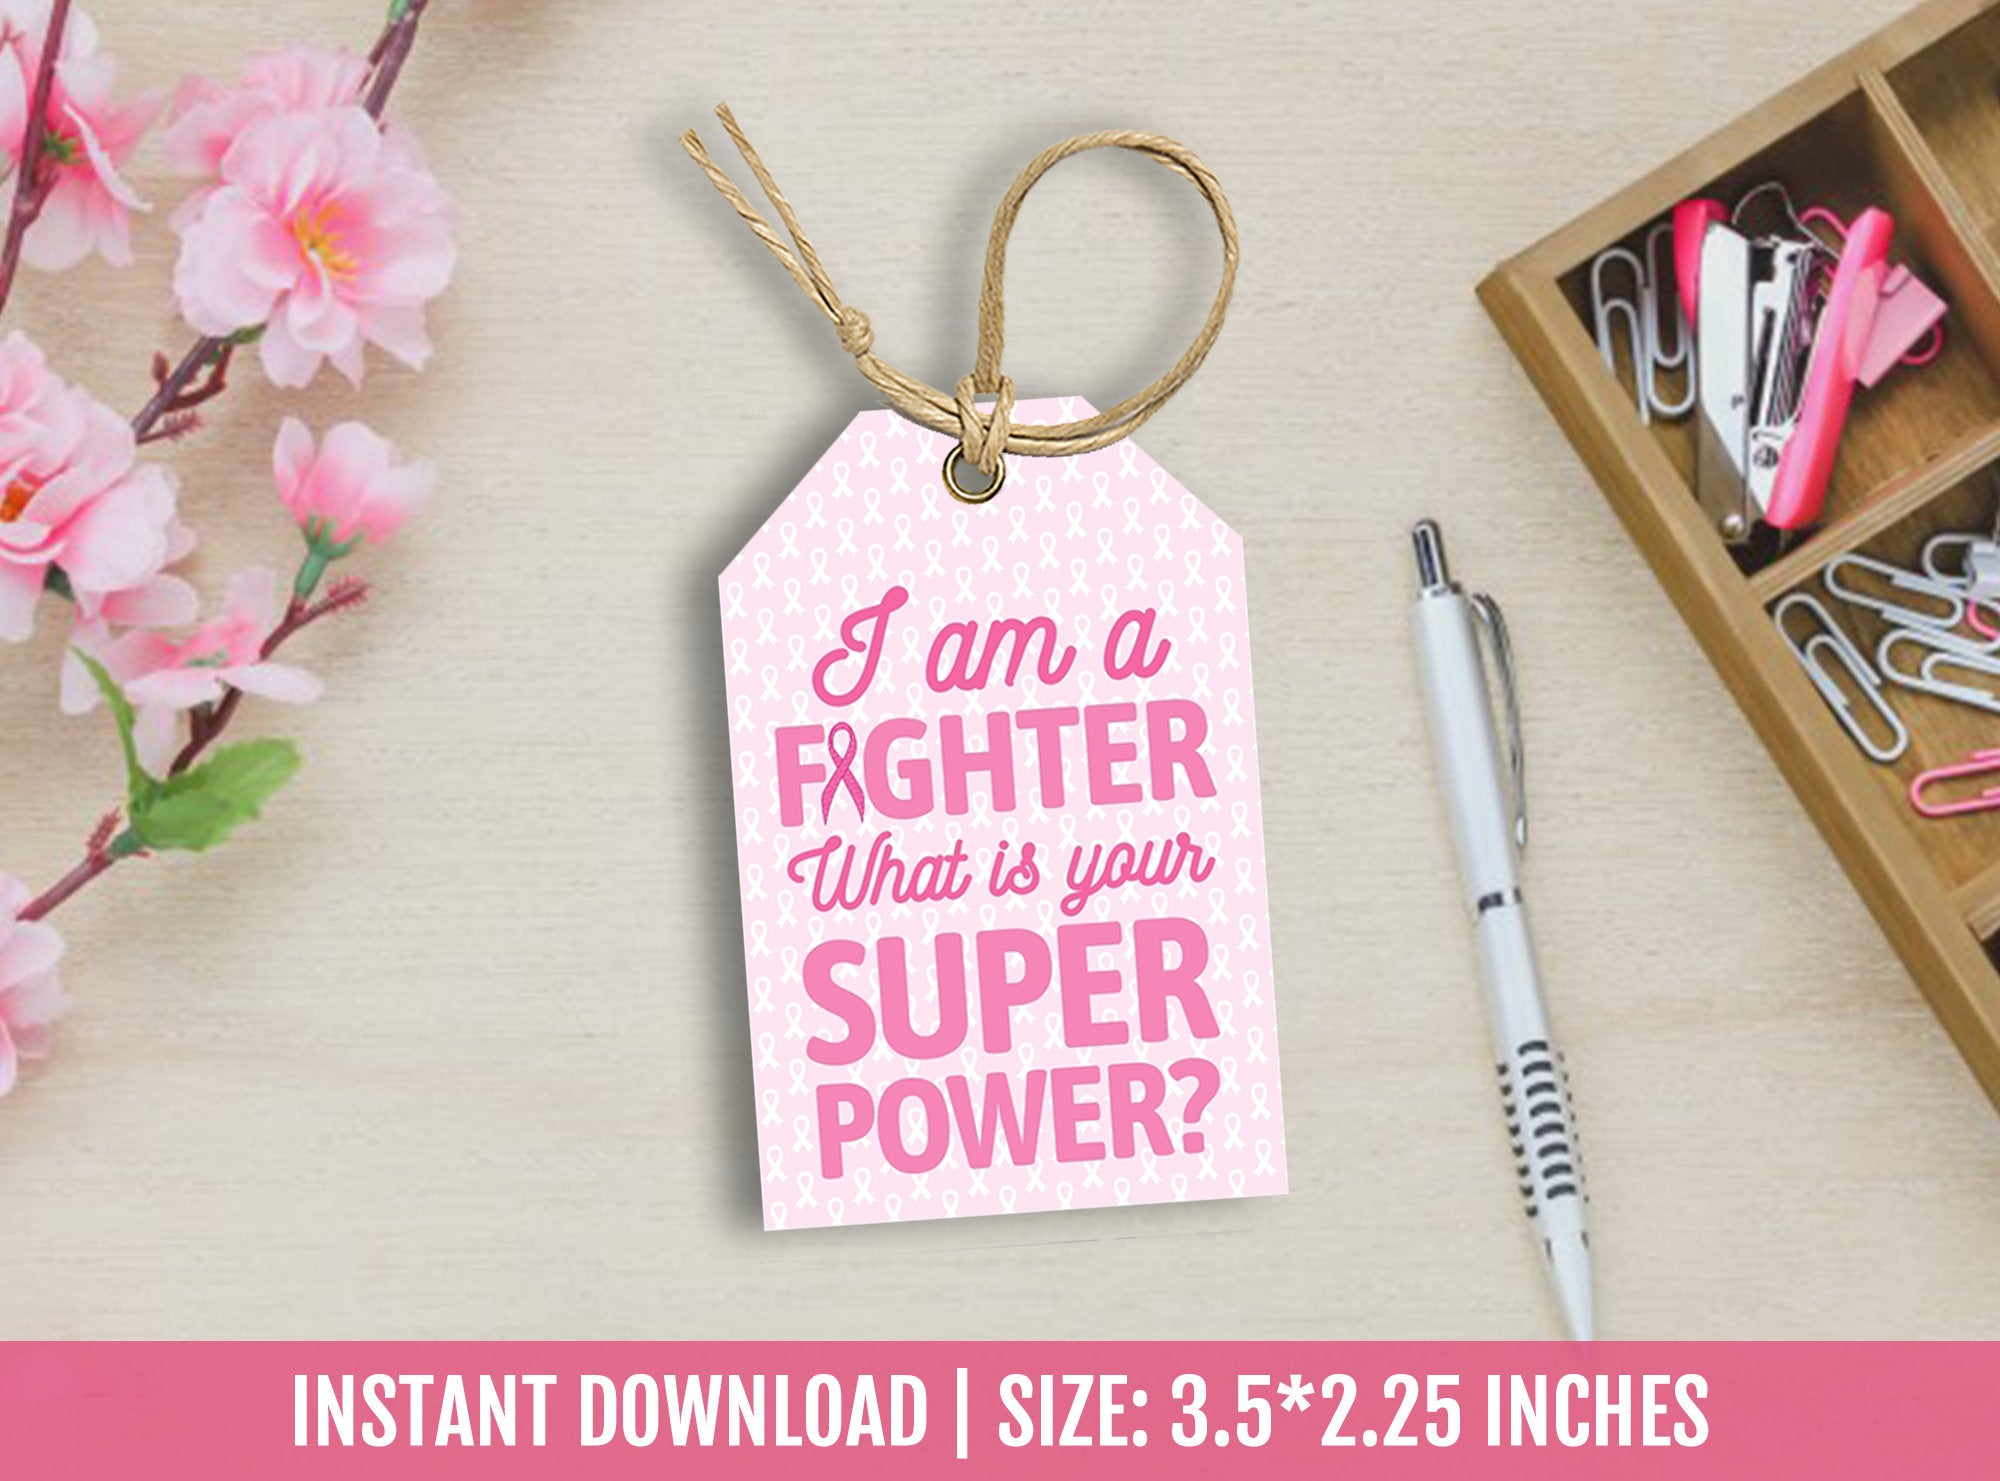 Breast Cancer Thank You Tags, Superpower favor tags, Awareness, Survivor Support Gift Tag Ideas [INSTANT DOWNLOAD] - TitaTipsPrintables